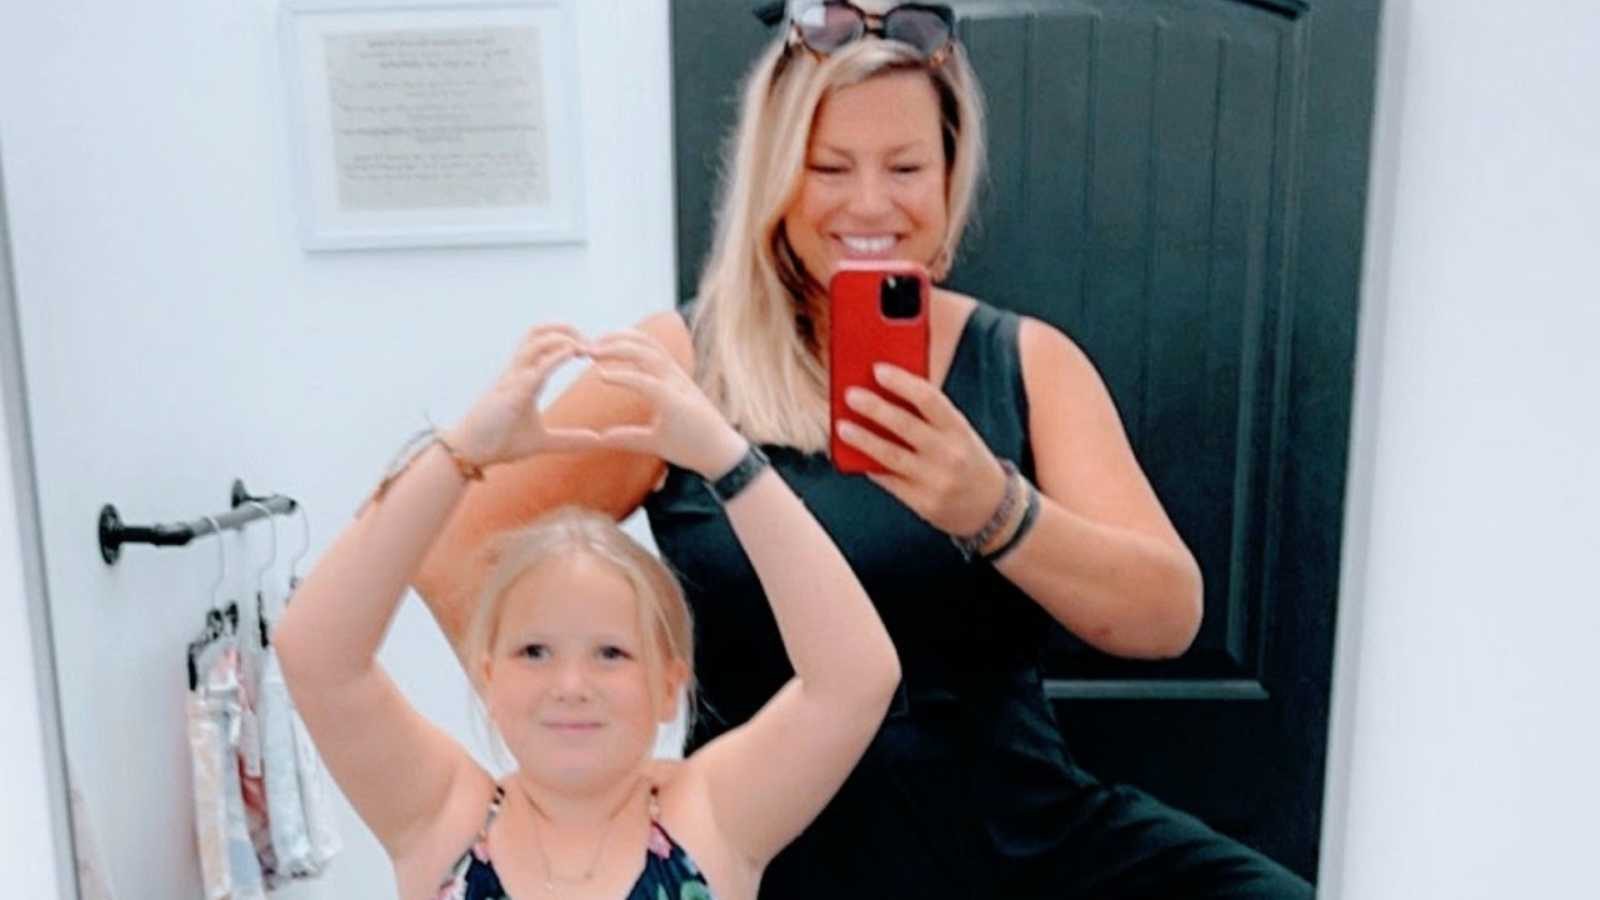 A woman takes a photo of herself and her daughter in a mirror